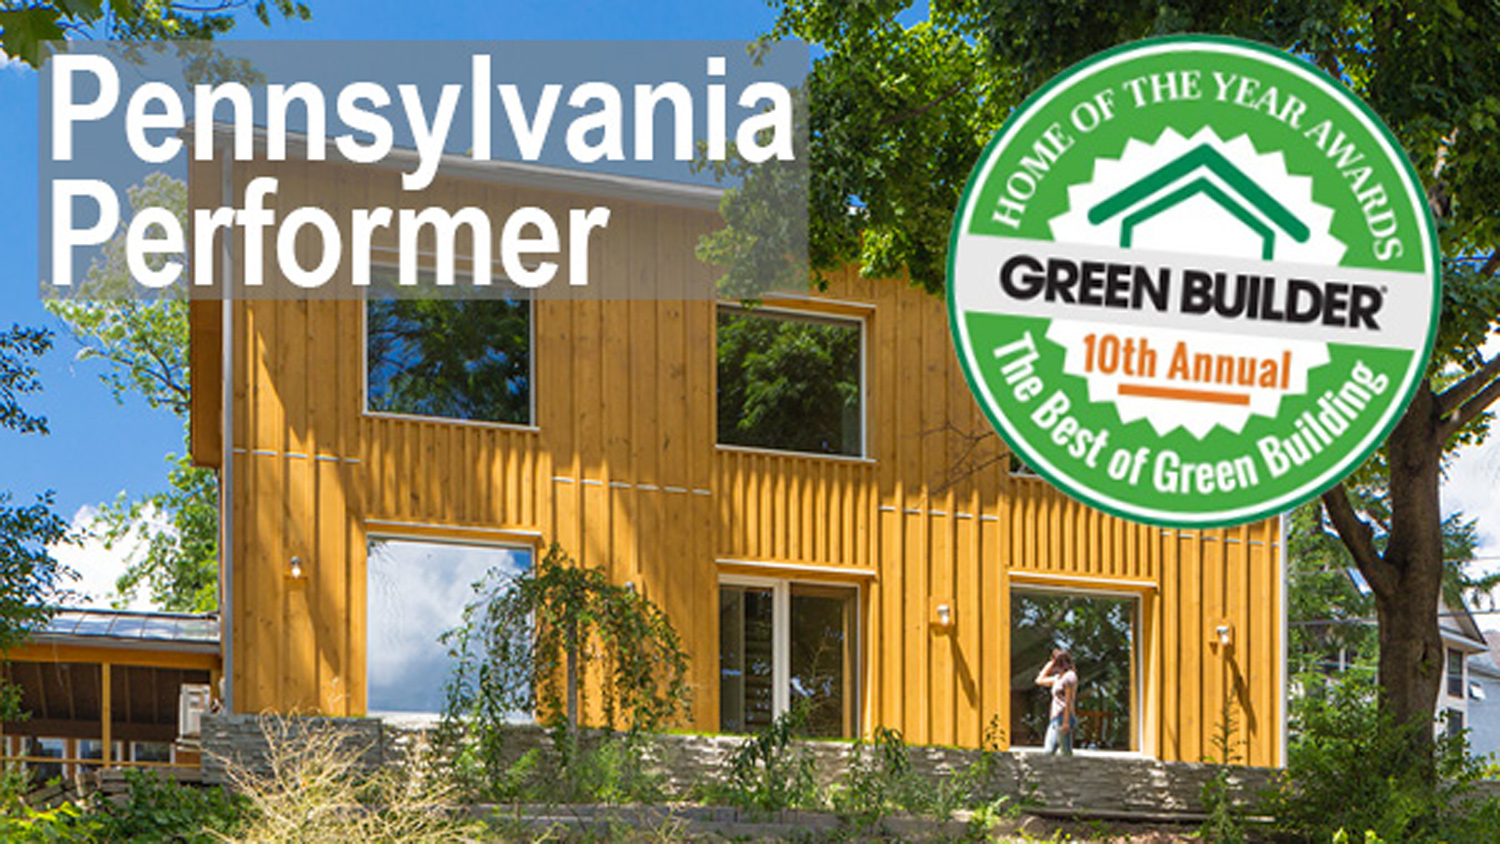 Scranton Passive House Green Builder Magazine Home of the Year Awards